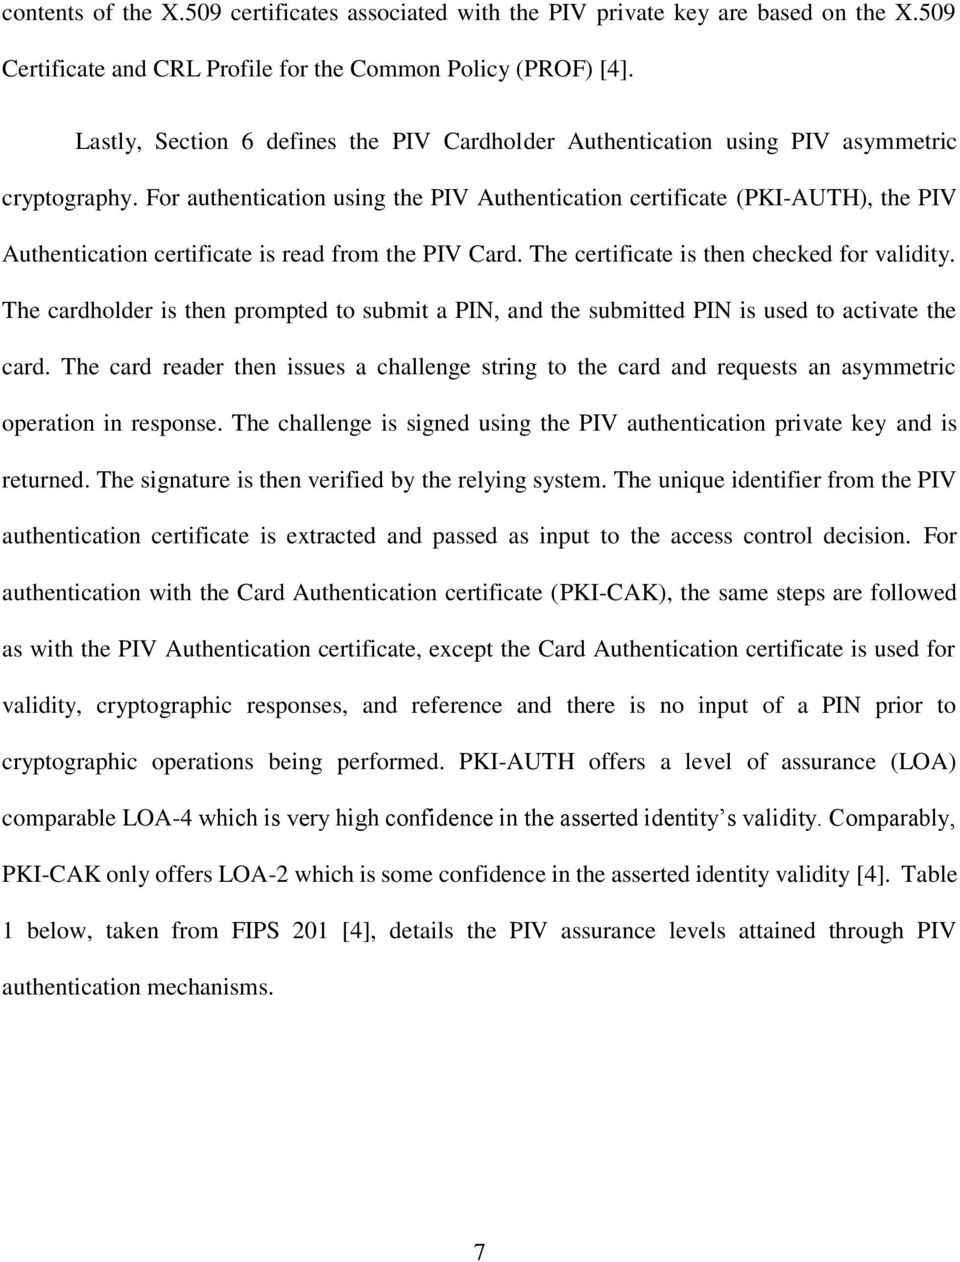 For authentication using the PIV Authentication certificate (PKI-AUTH), the PIV Authentication certificate is read from the PIV Card. The certificate is then checked for validity.